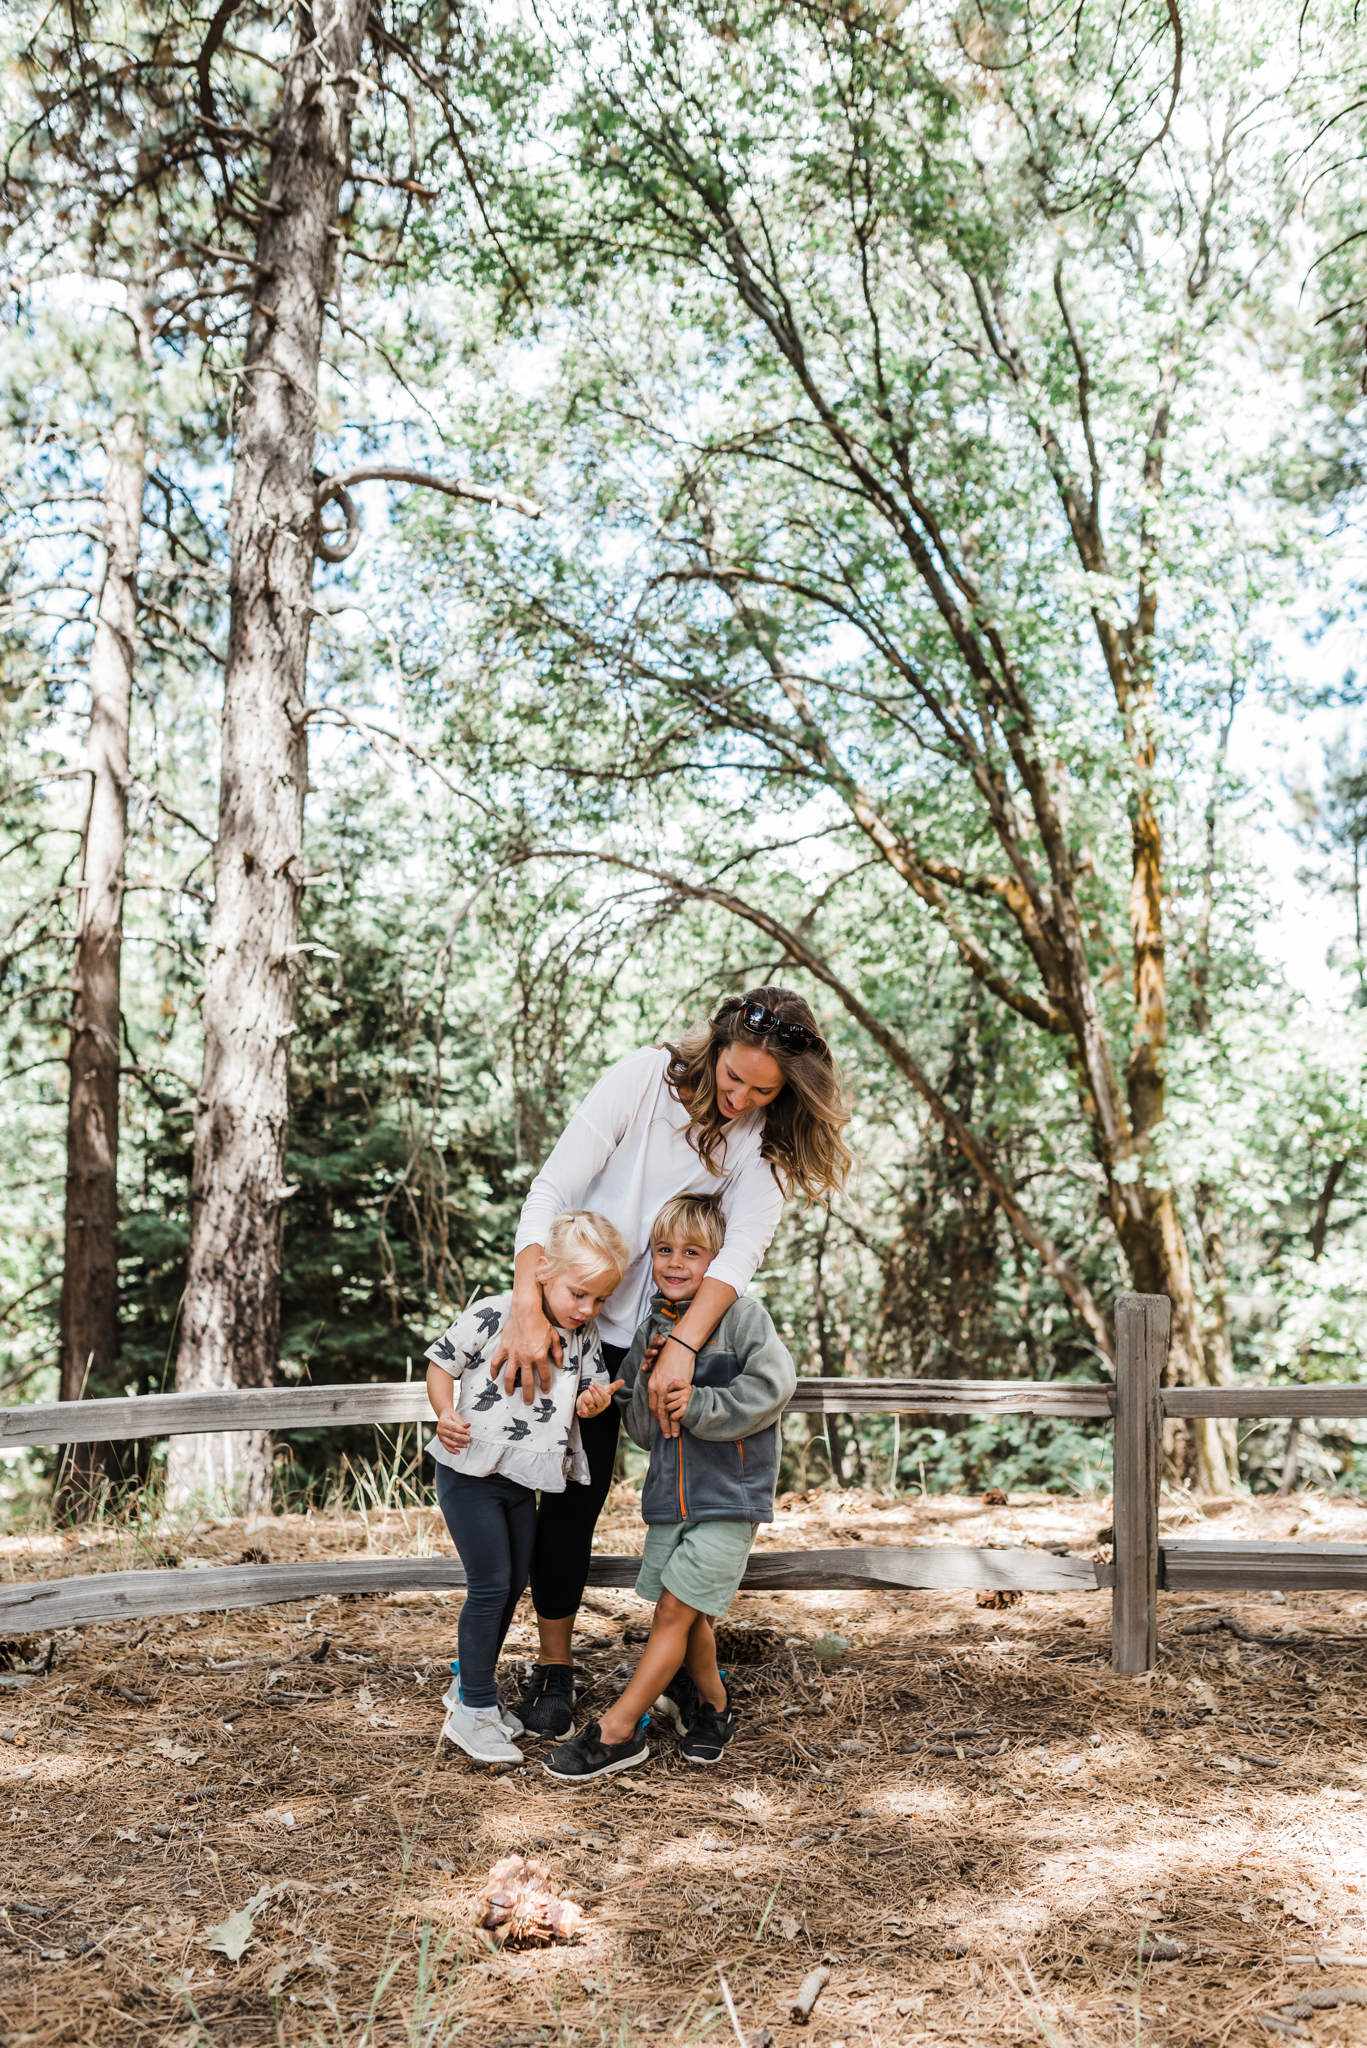 Mini-Mountain Adventure | Lake Arrowhead | thoughtsbybrandi.com